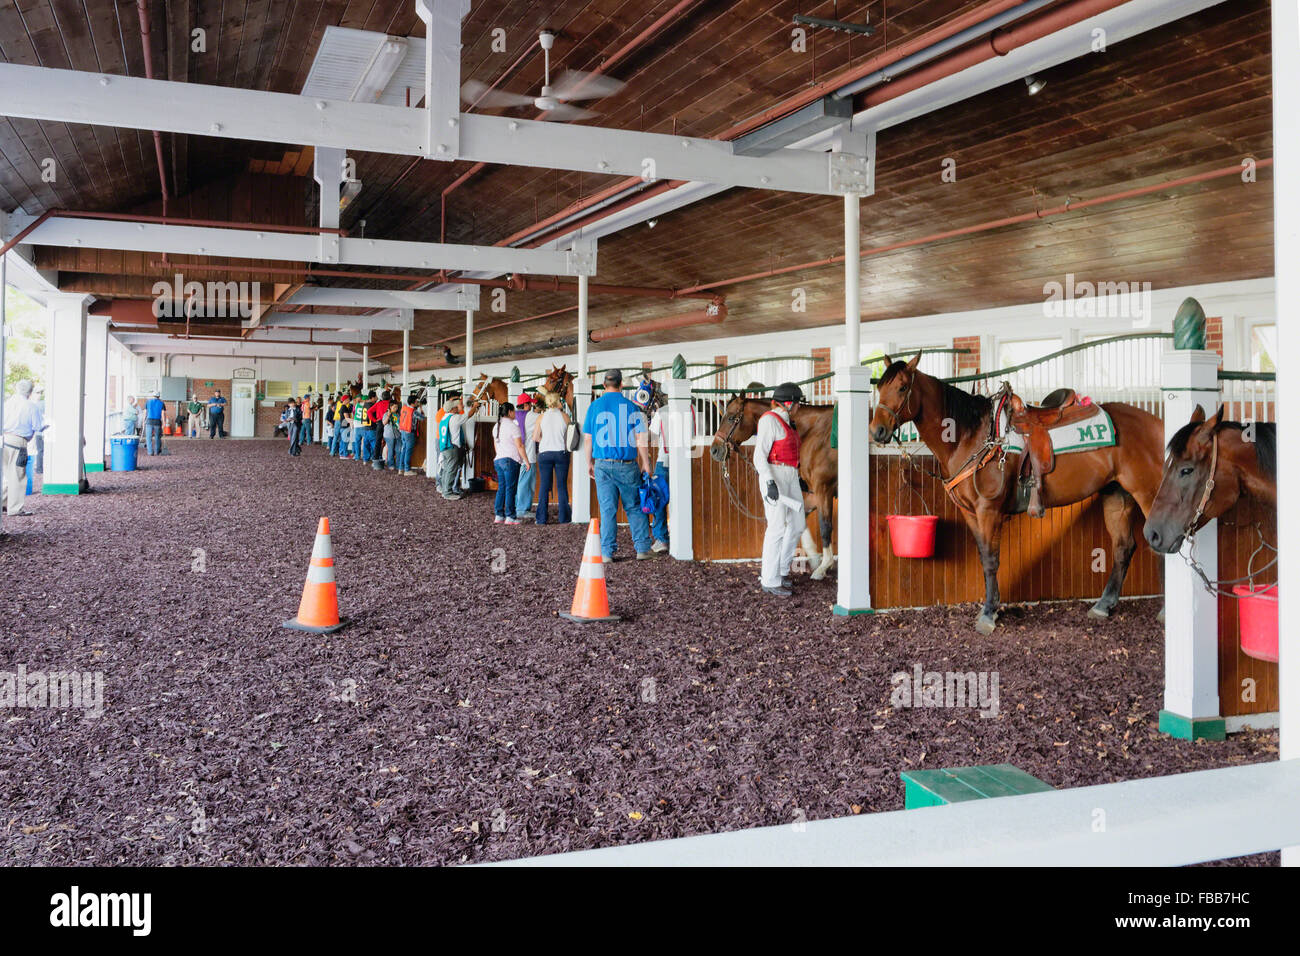 Race Horses in a Stable Being Prepared for a Race, Monmouth Park Race Track, Oceanport, New Jersey Stock Photo